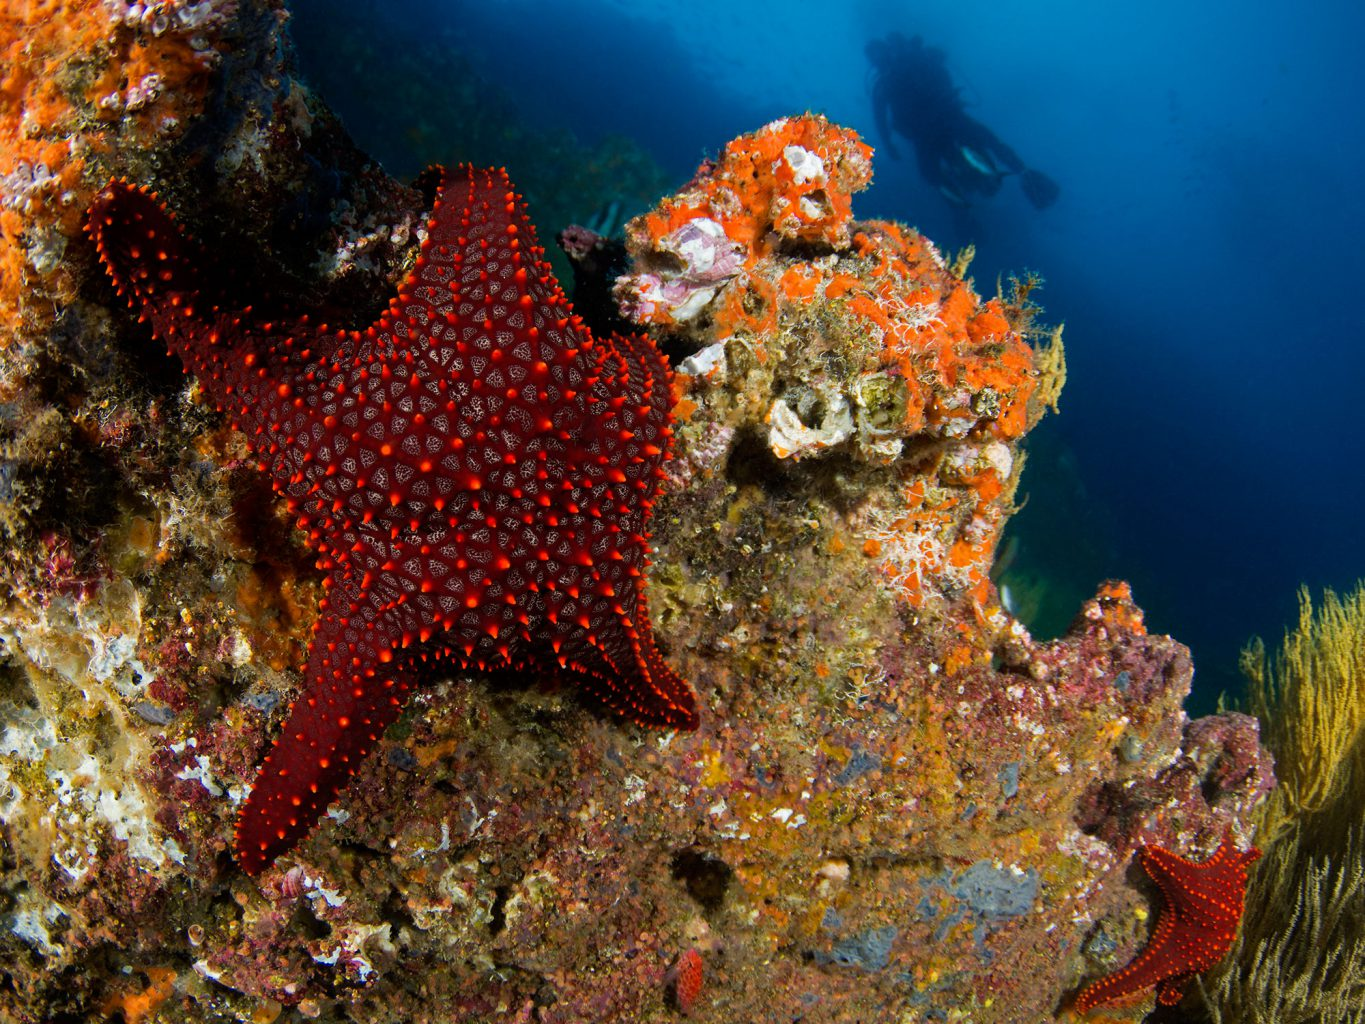 Galapagos Sea Star, Seestern